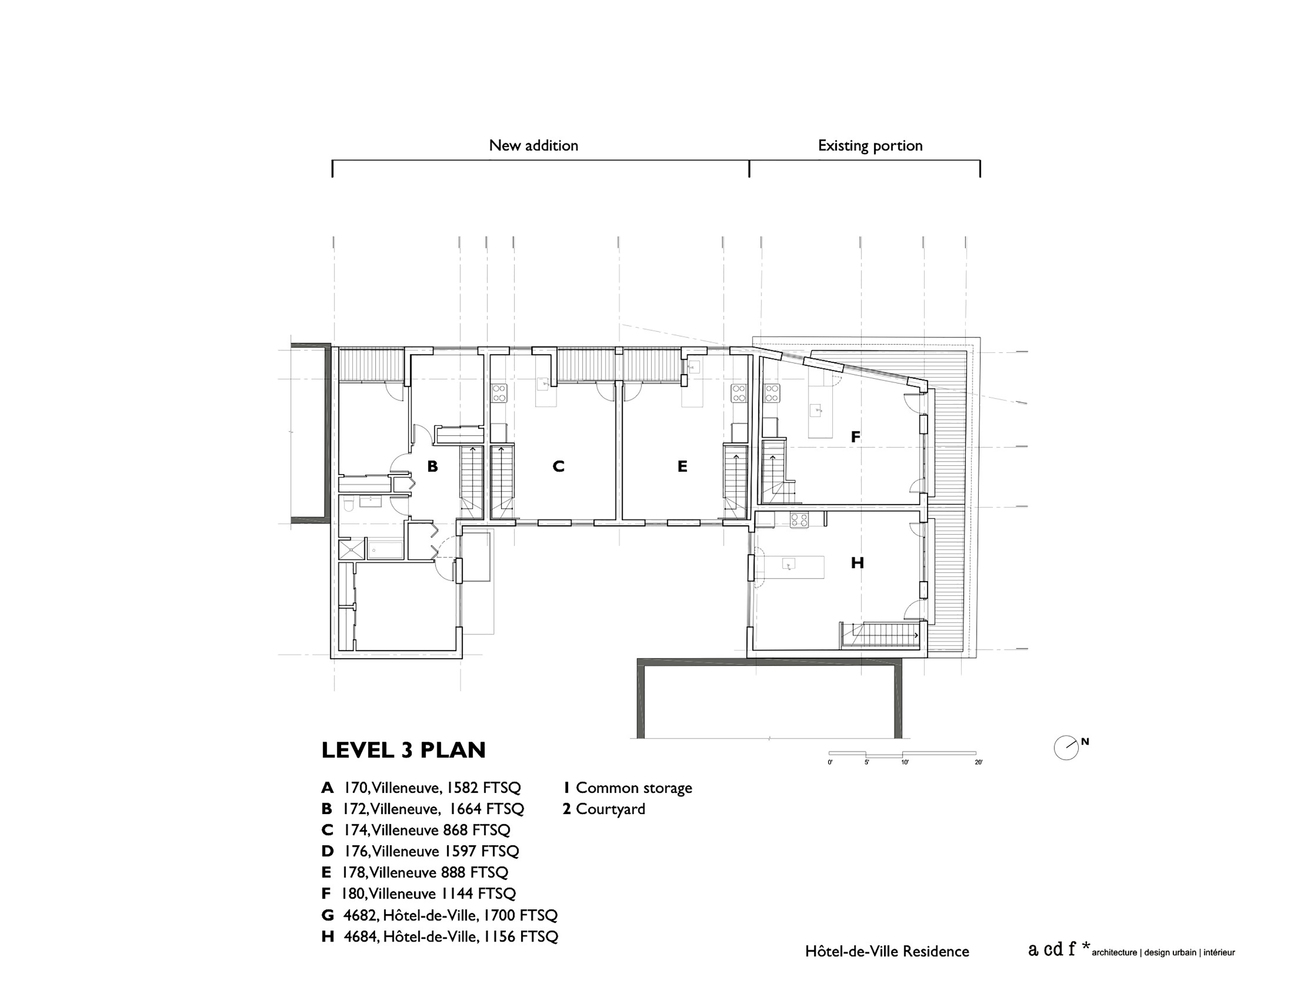 100 Cool Office Floor Plans Apartments Garage Floorplan Garage Floor Plan Home Interior Garden And Home Architects Plan Download File Size 400kb Loversiq 15 Photos And Inspiration Bungalow Plans With Basement